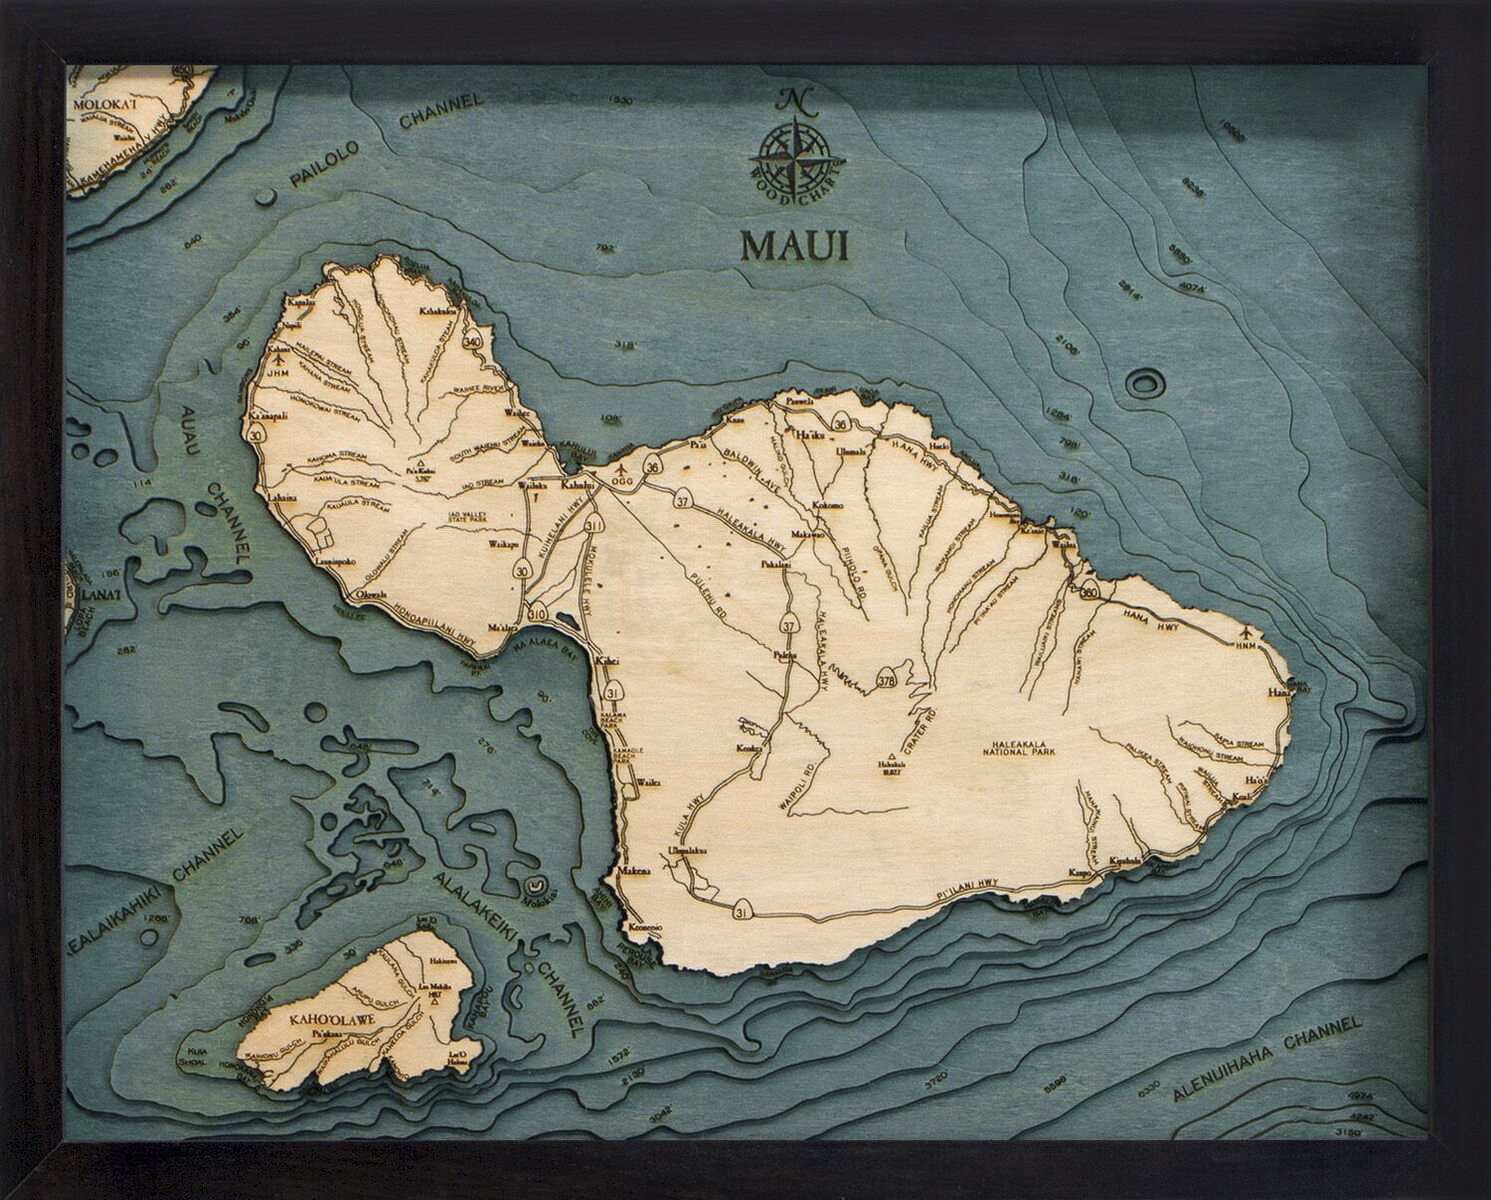 Bathymetric Map Maui, Hawaii